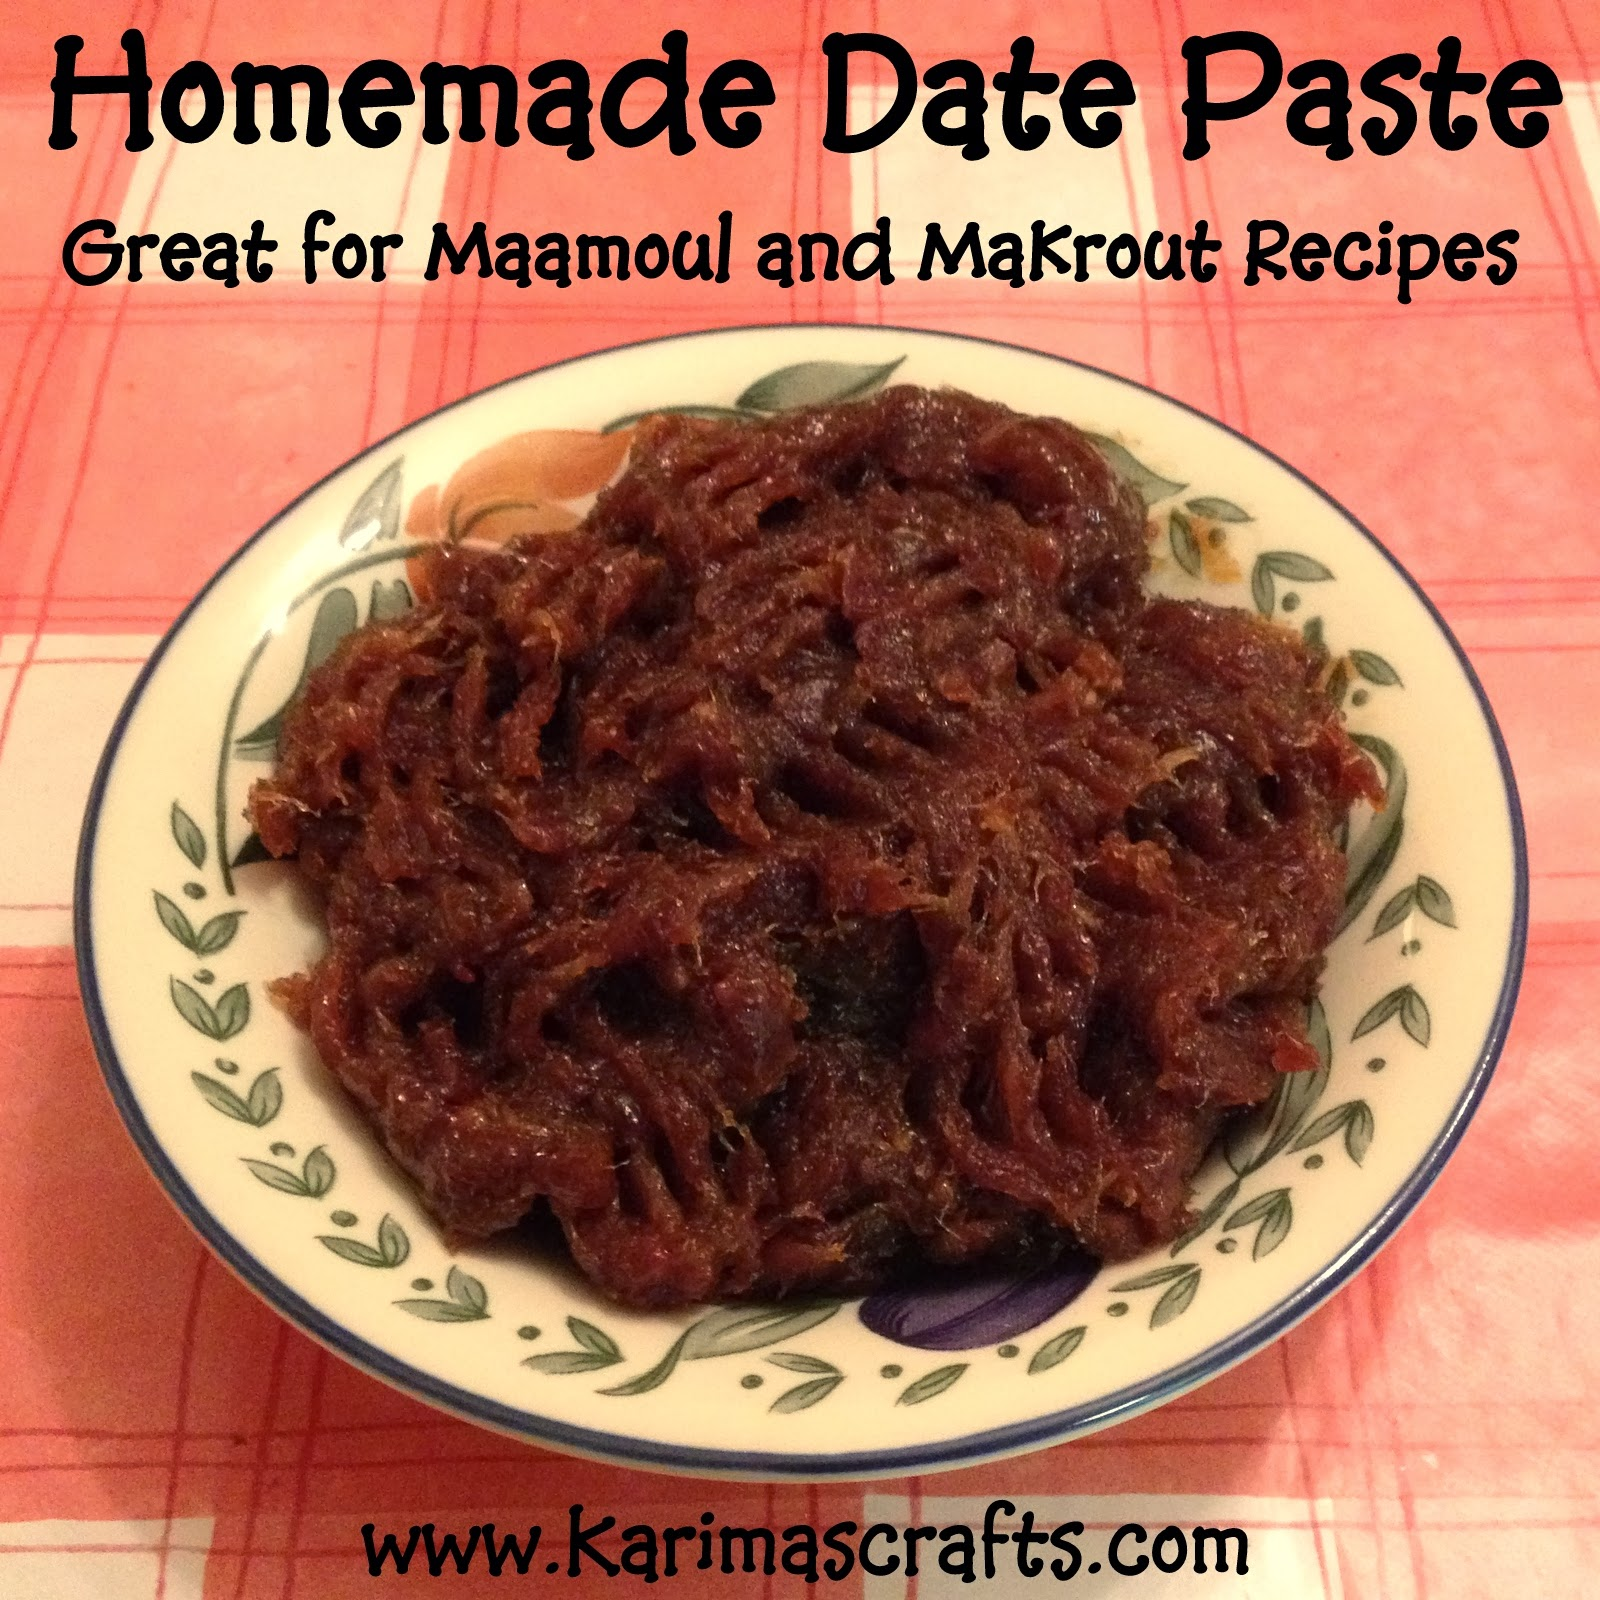 date paste recipe maamoul makrout muslim blog